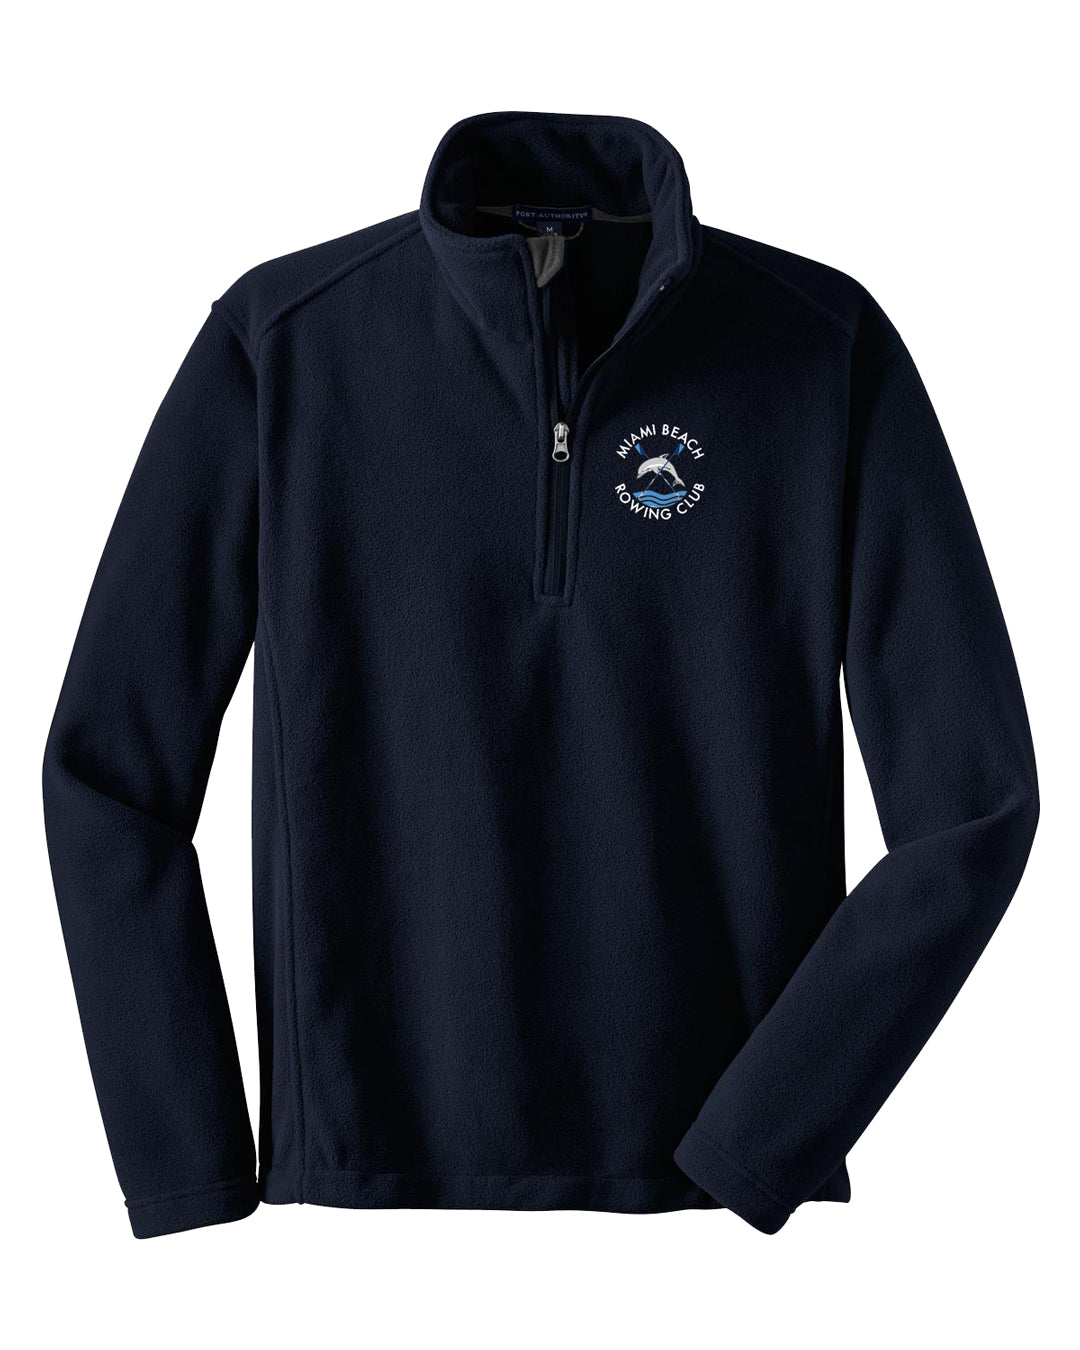 Mens 1/4 Zip Miami Beach Fleece Pullover